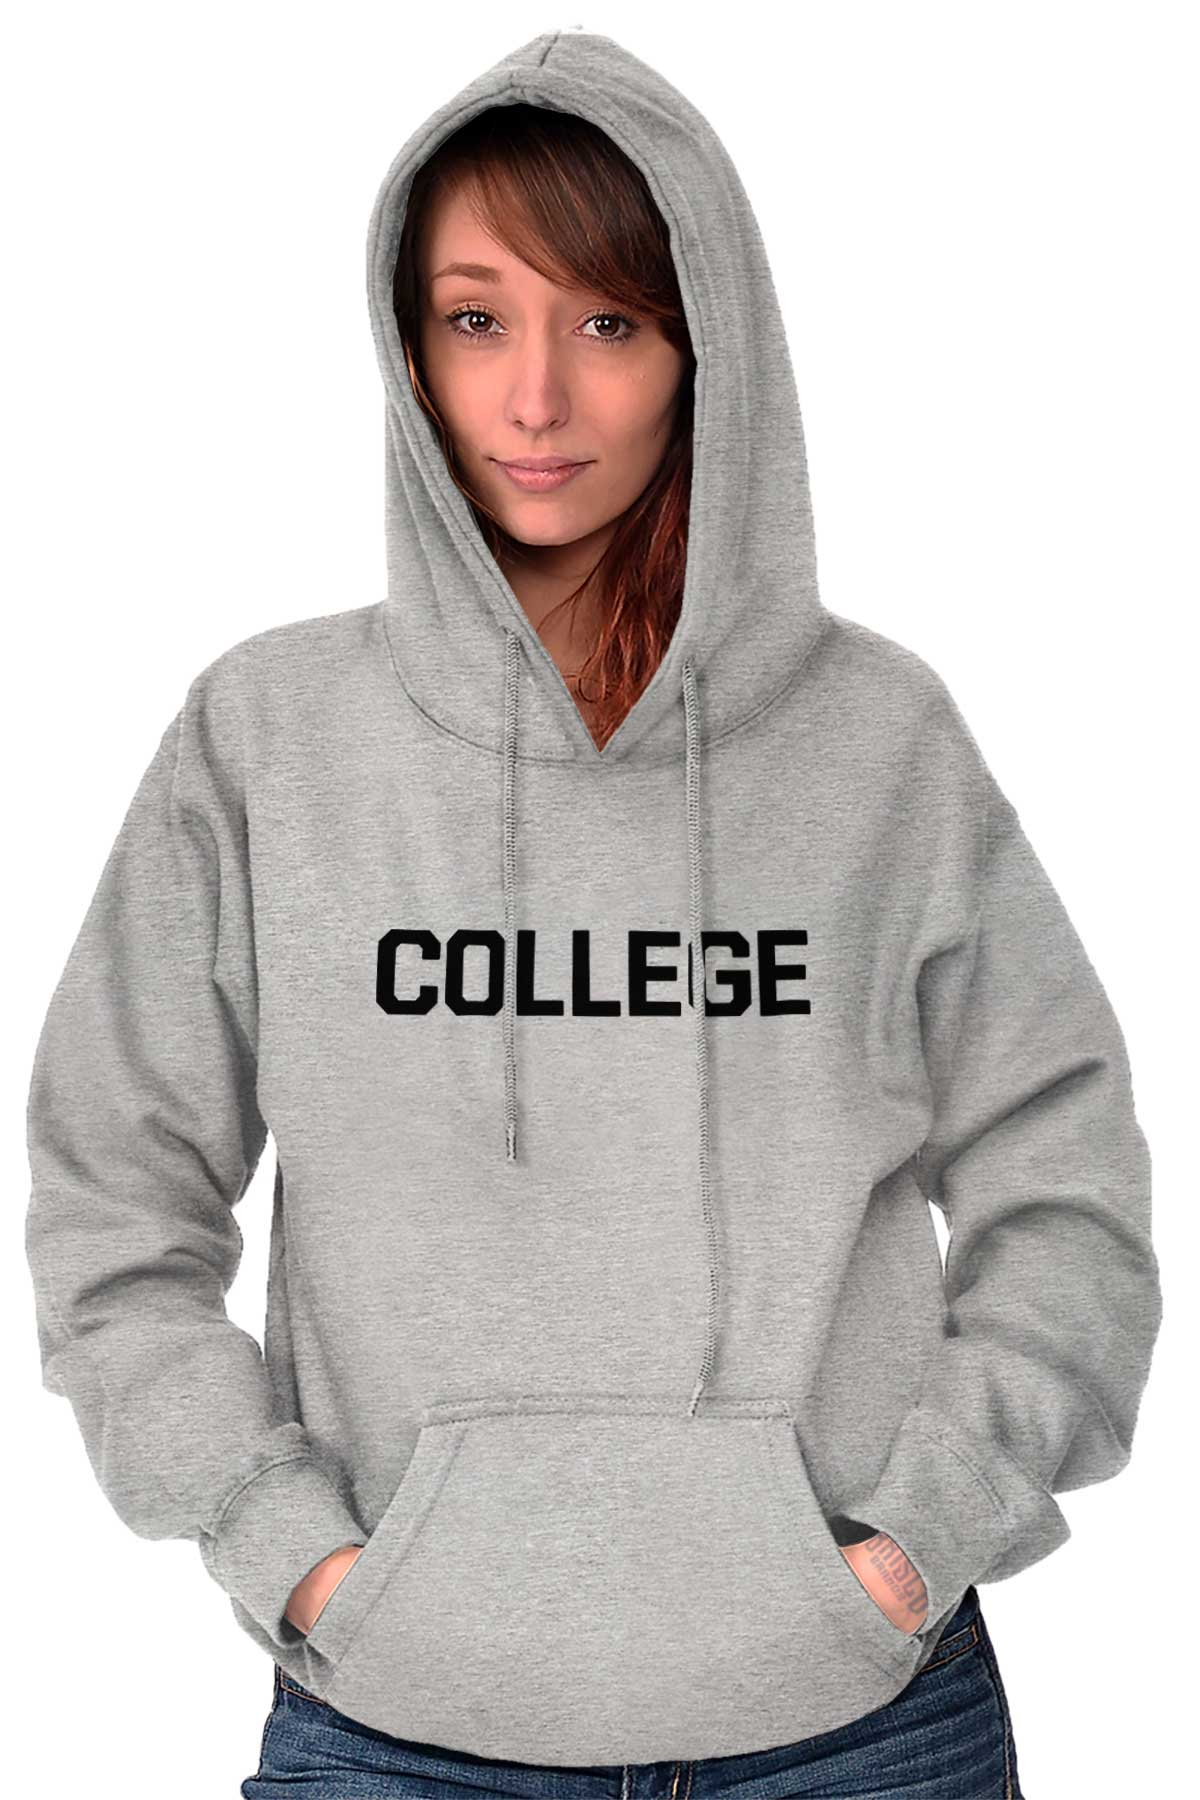 School FREE UK Delivery Unisex Hoodie College Student 9 Colours